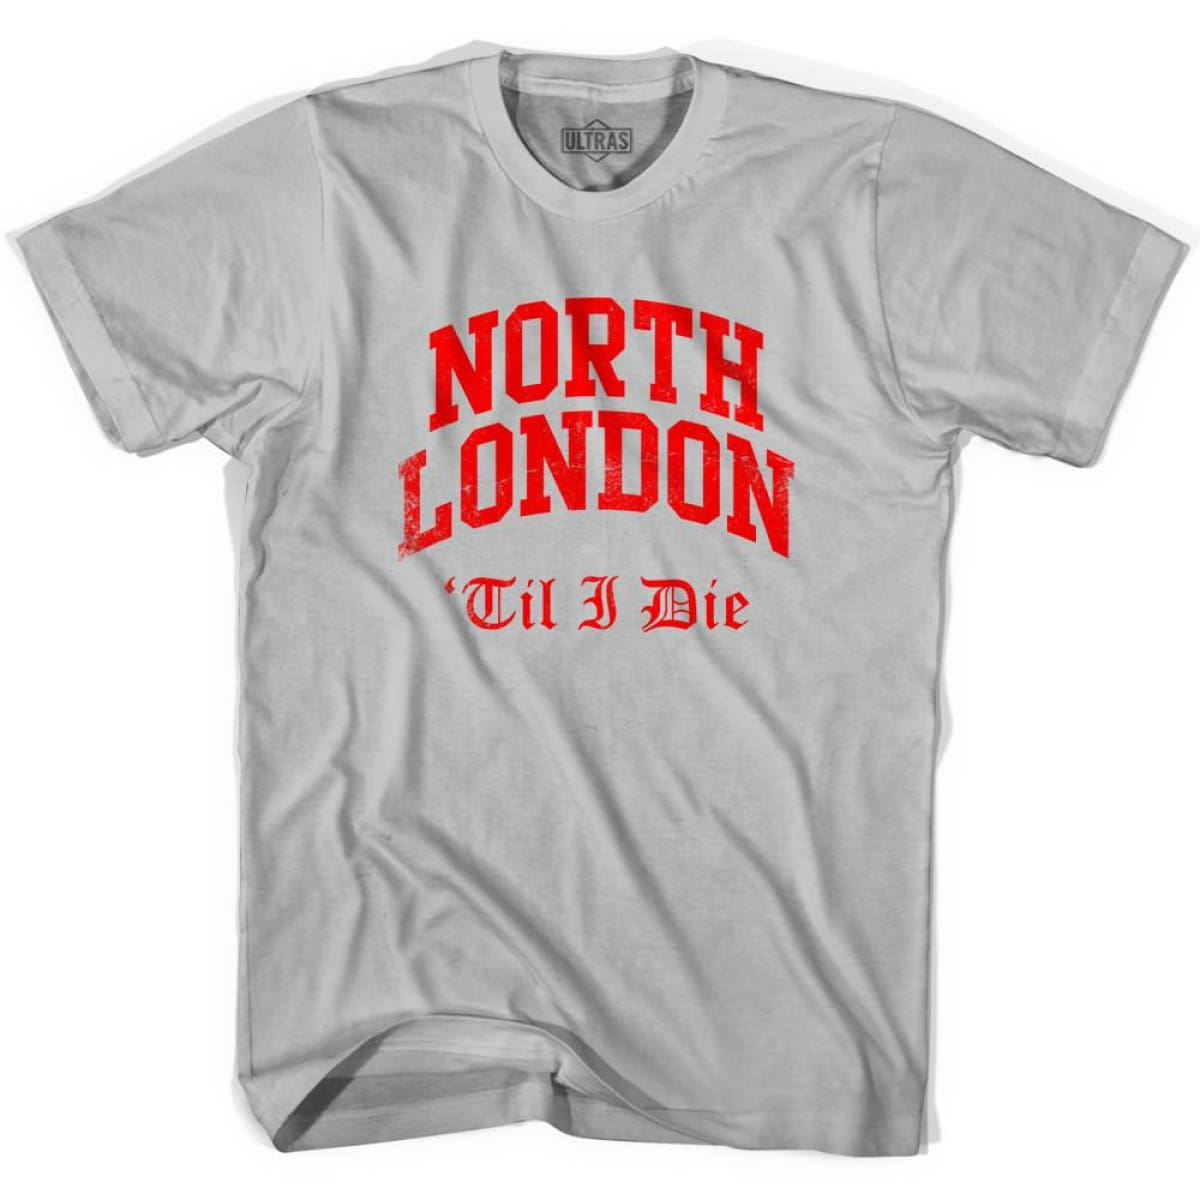 Ultras Arsenal North London Till I Die Soccer T-shirt - Cool Grey / Adult Small - Ultras Club Soccer T-shirt